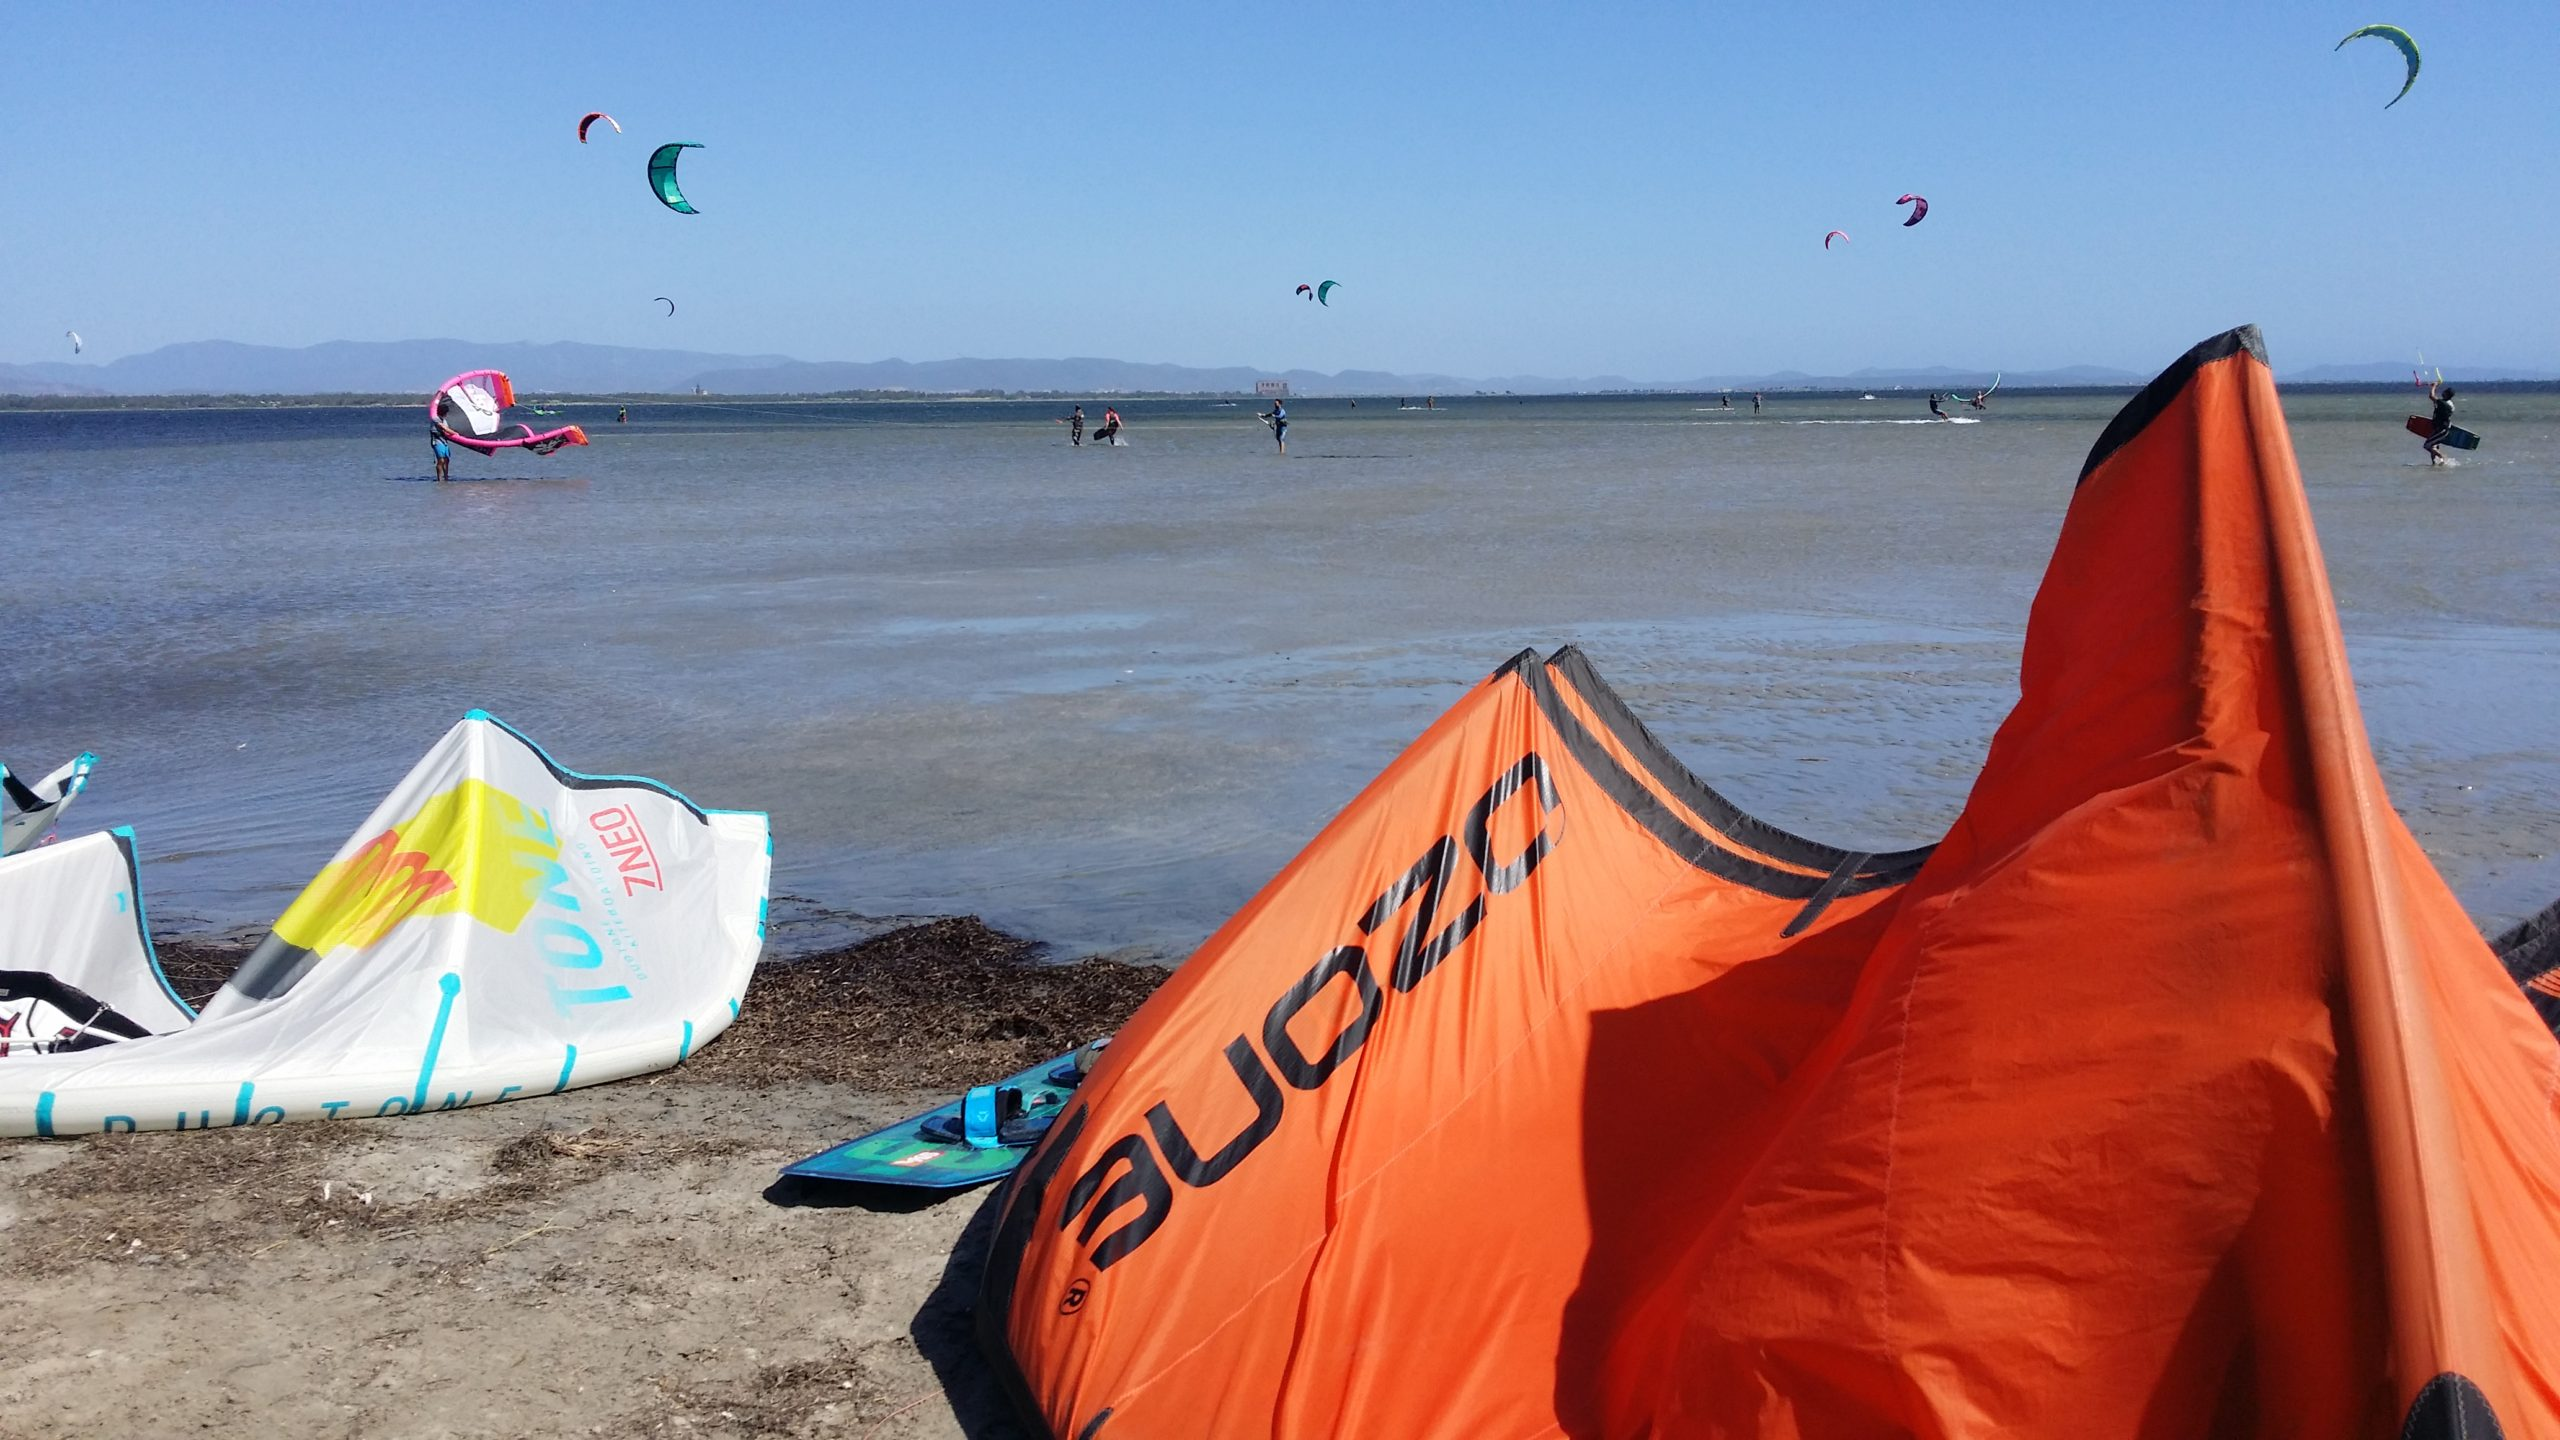 Kitesurf a Punta Trettu Vele kite in volo e atterrate scaled